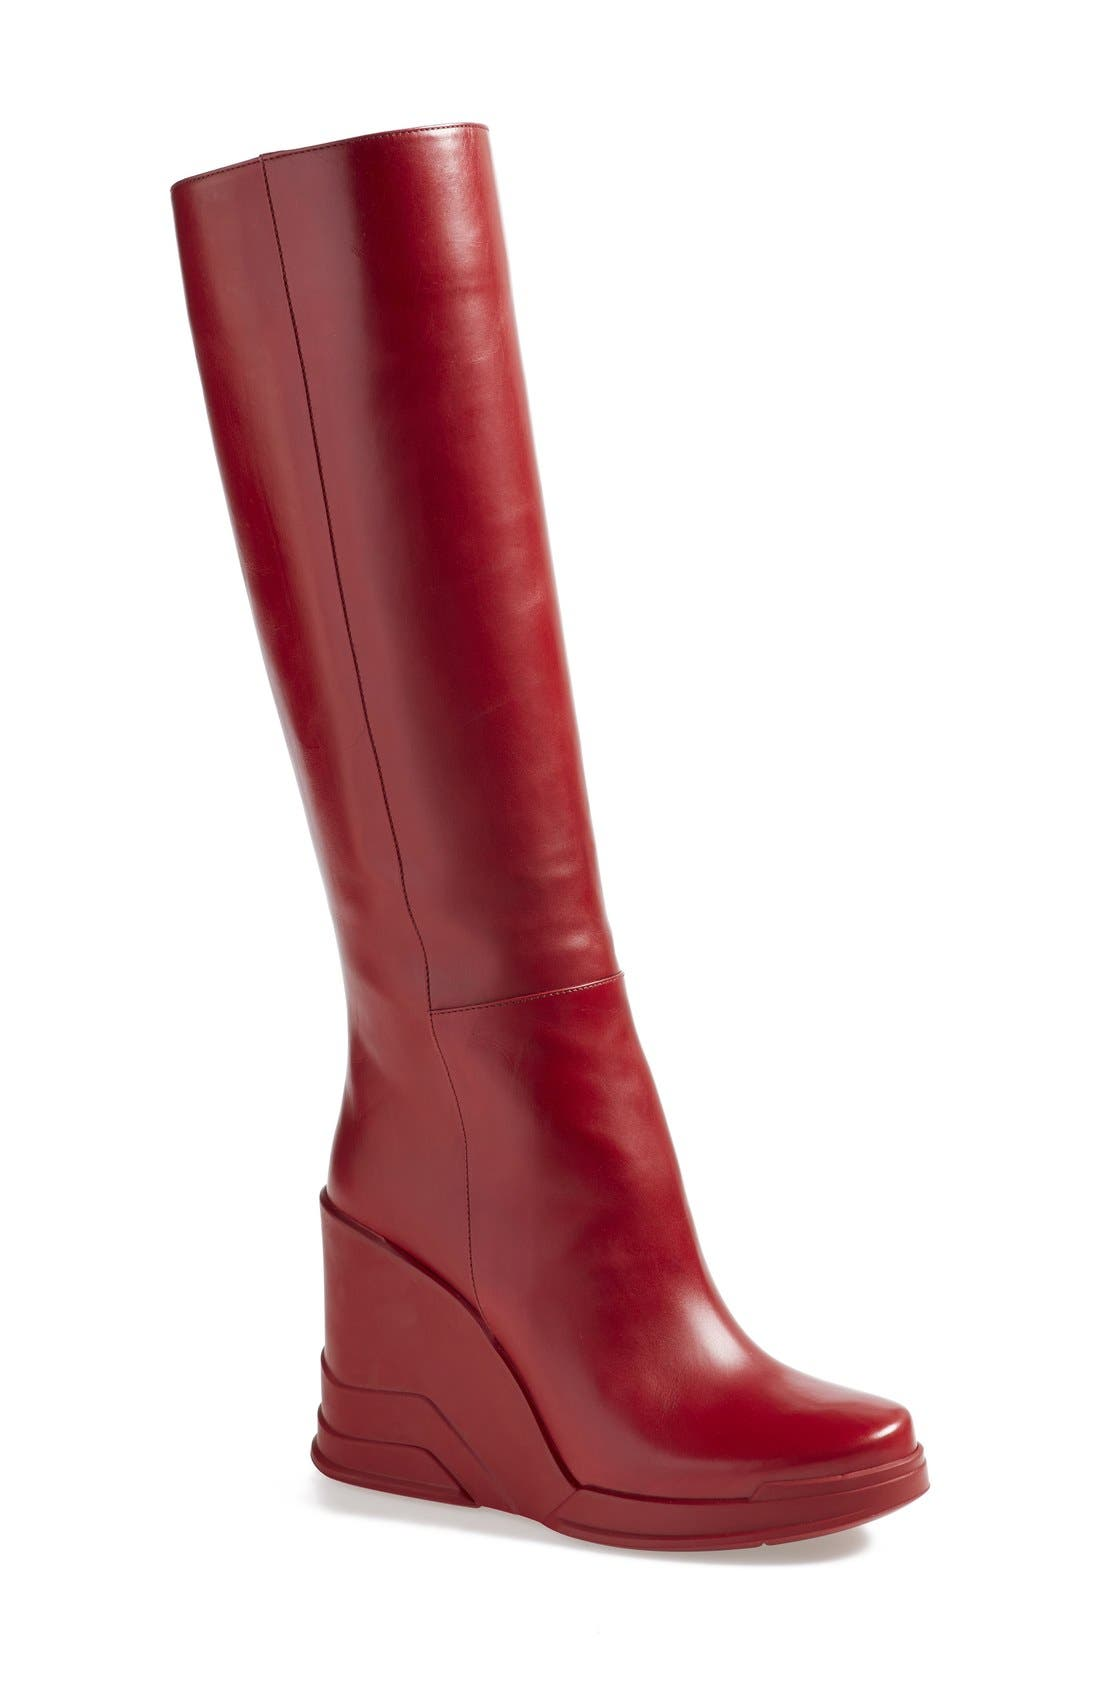 Main Image - Prada Knee High Wedge Boot (Women)